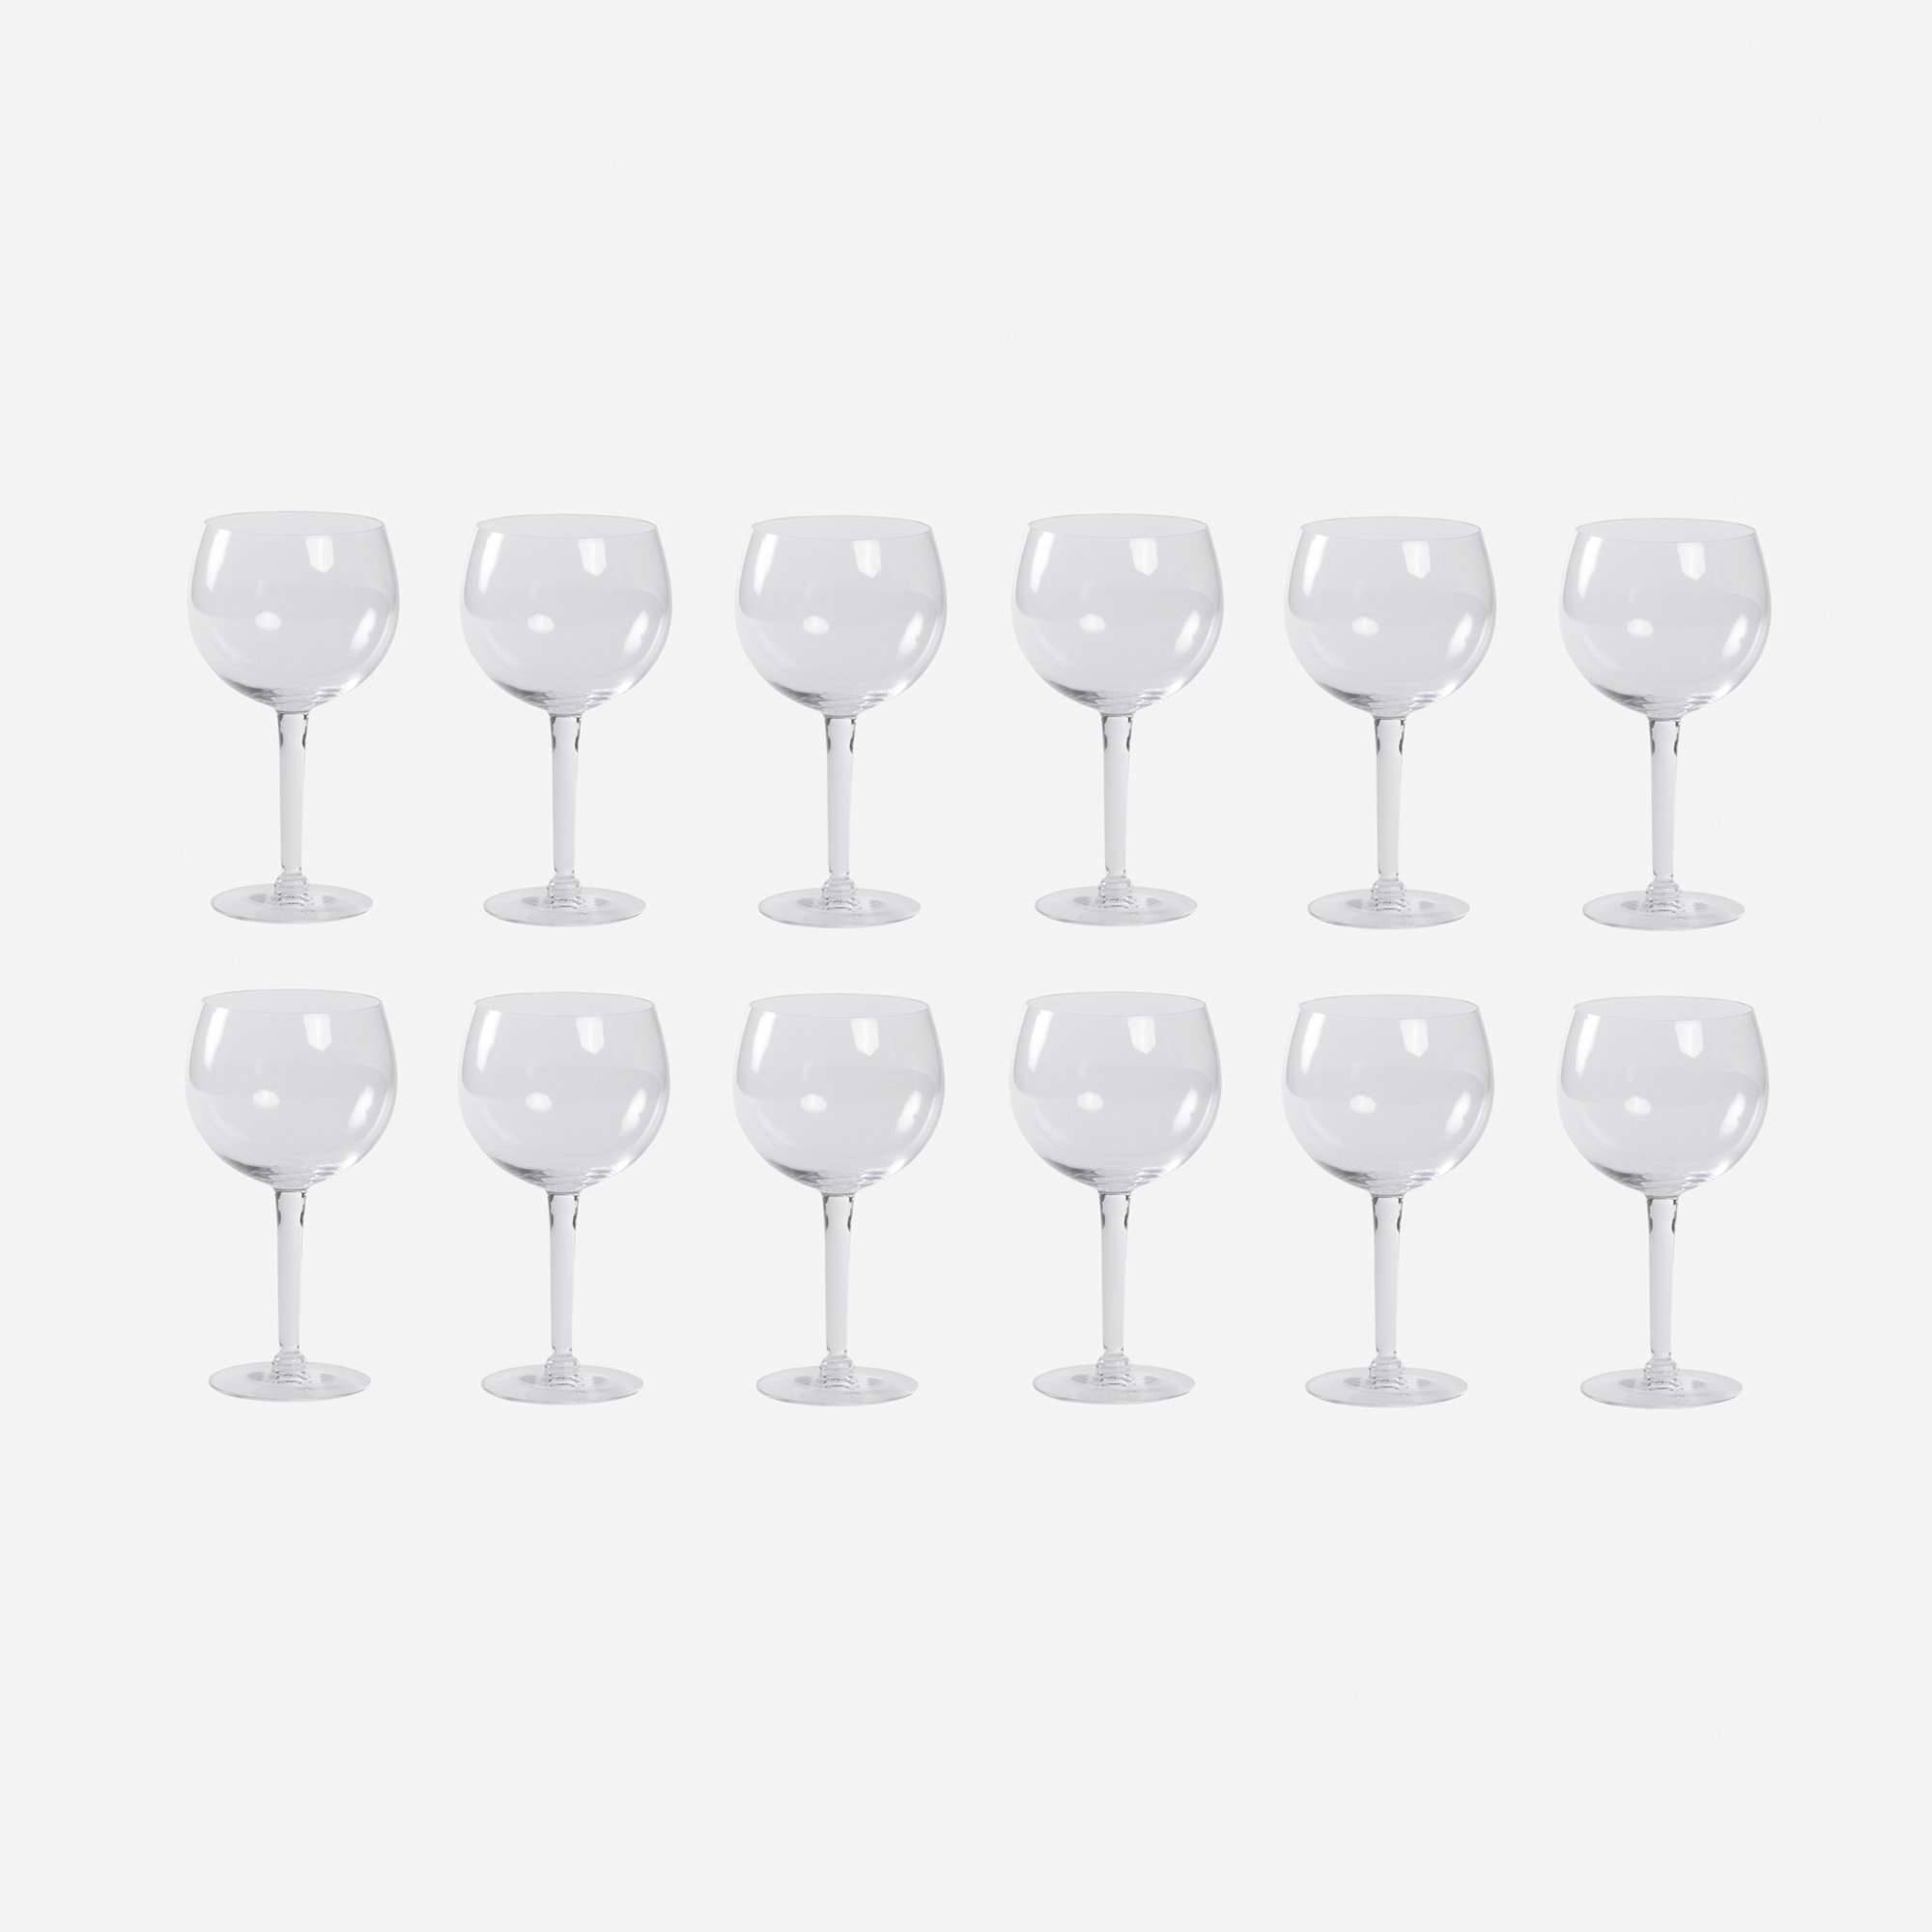 620: Garth and Ada Louise Huxtable / Red Wine glasses from The Four Seasons, set of twelve (1 of 1)